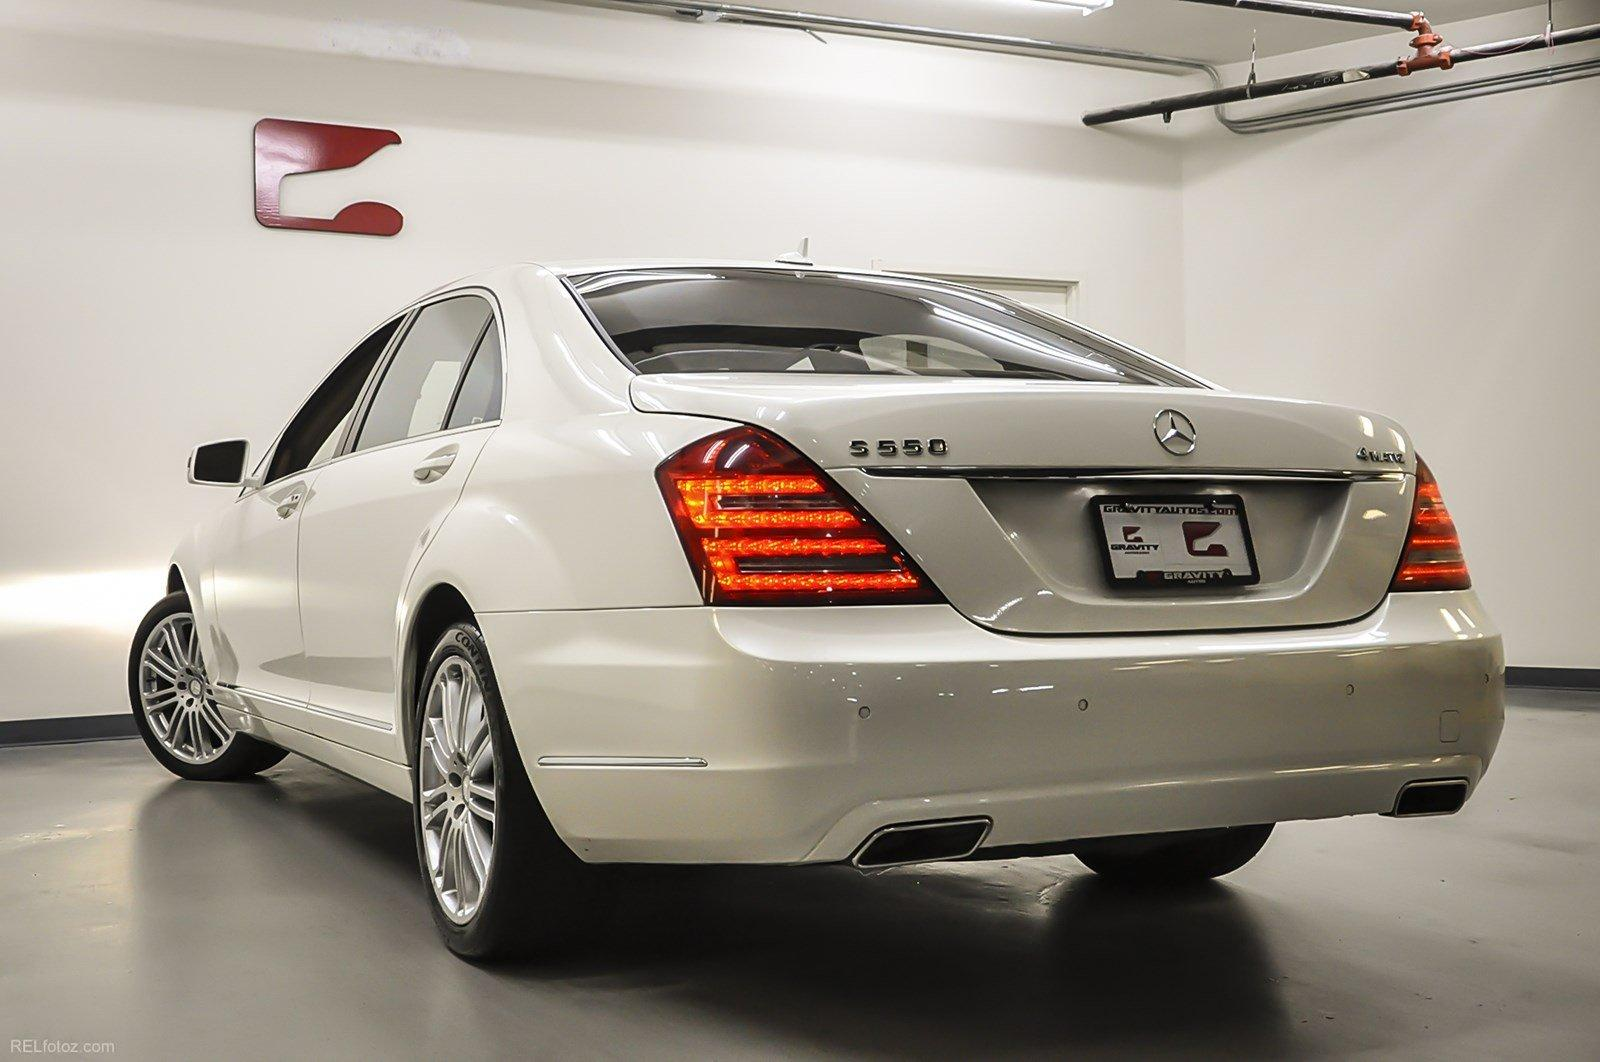 All Types 2010 s class : 2010 Mercedes-Benz S-Class S 550 Stock # 304876 for sale near ...